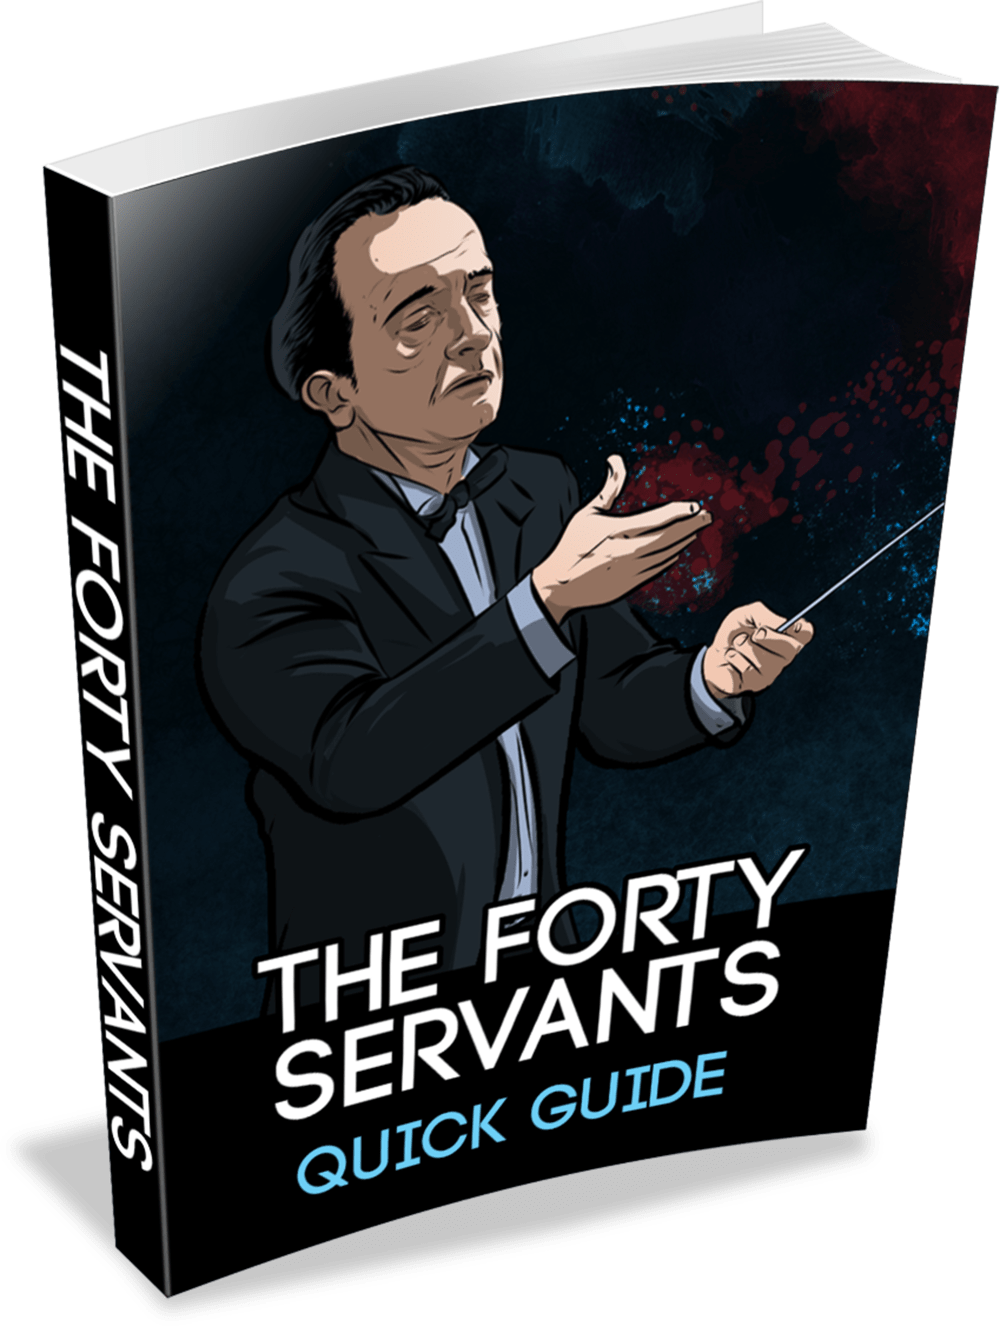 Forty Servants Gudiebook